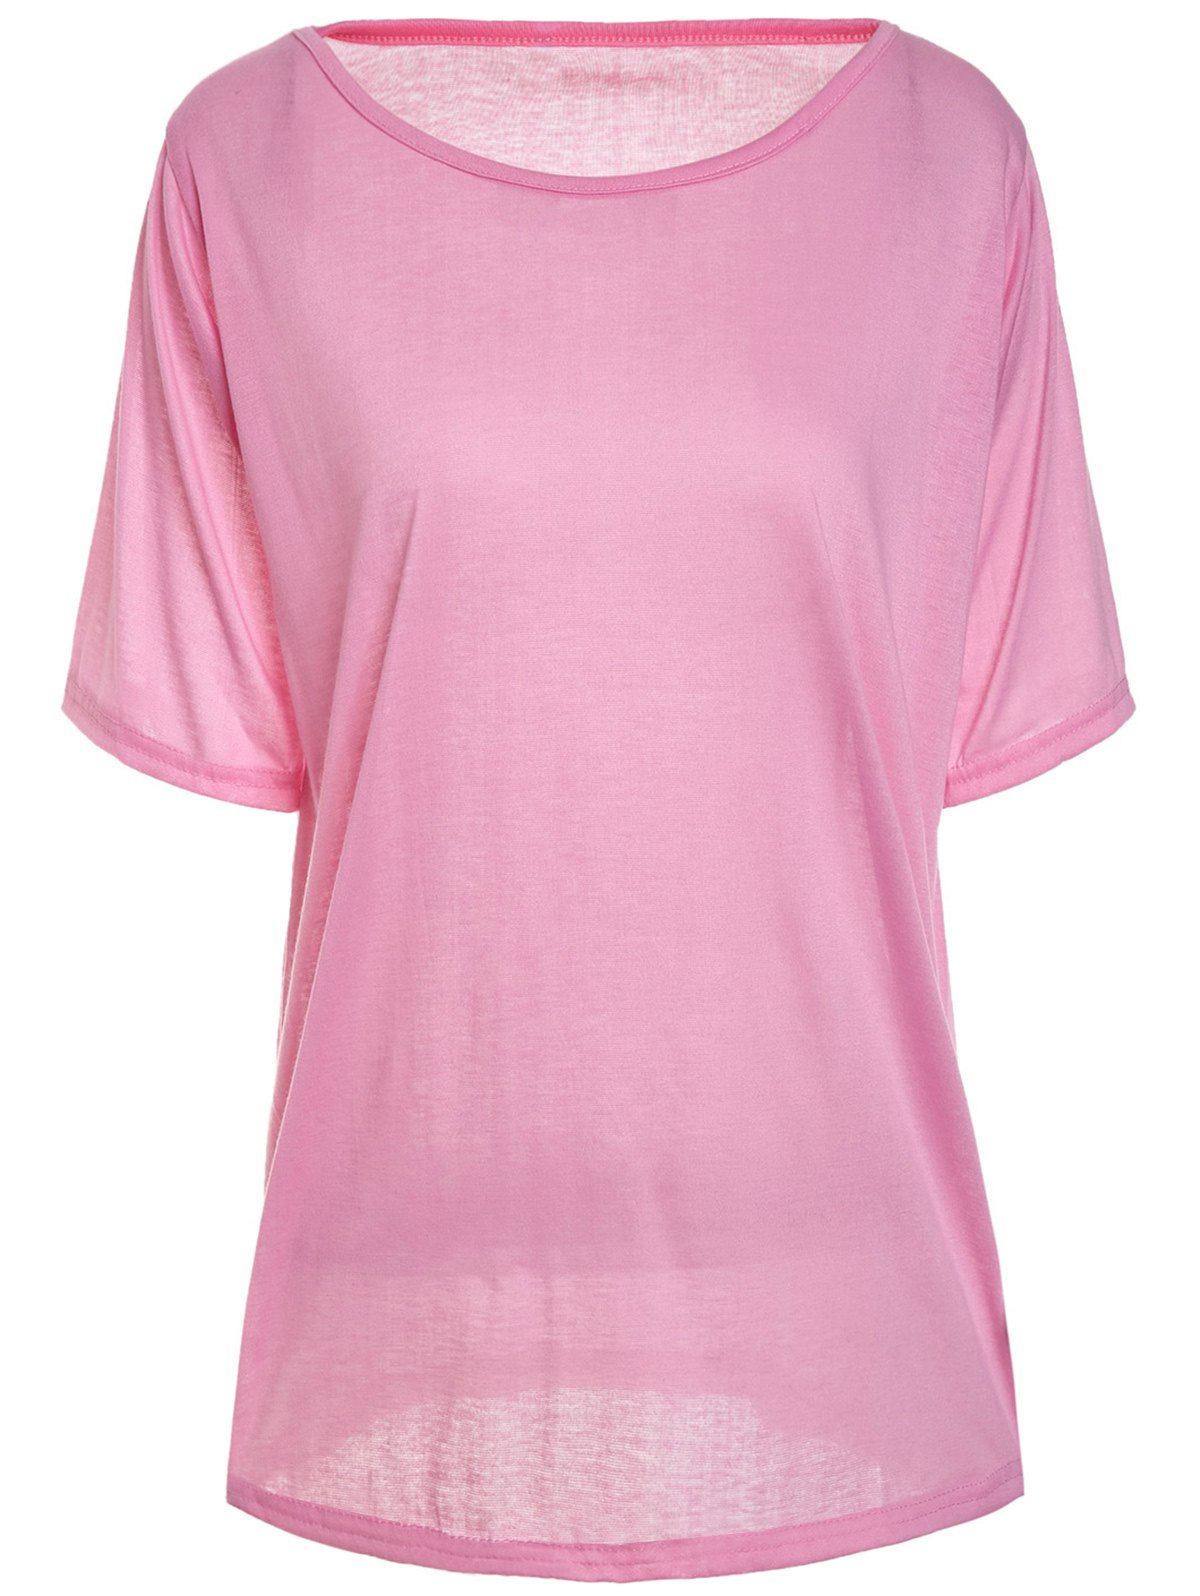 Casual Scoop Neck Solid Color Half Sleeve Women's T-Shirt - PINK M